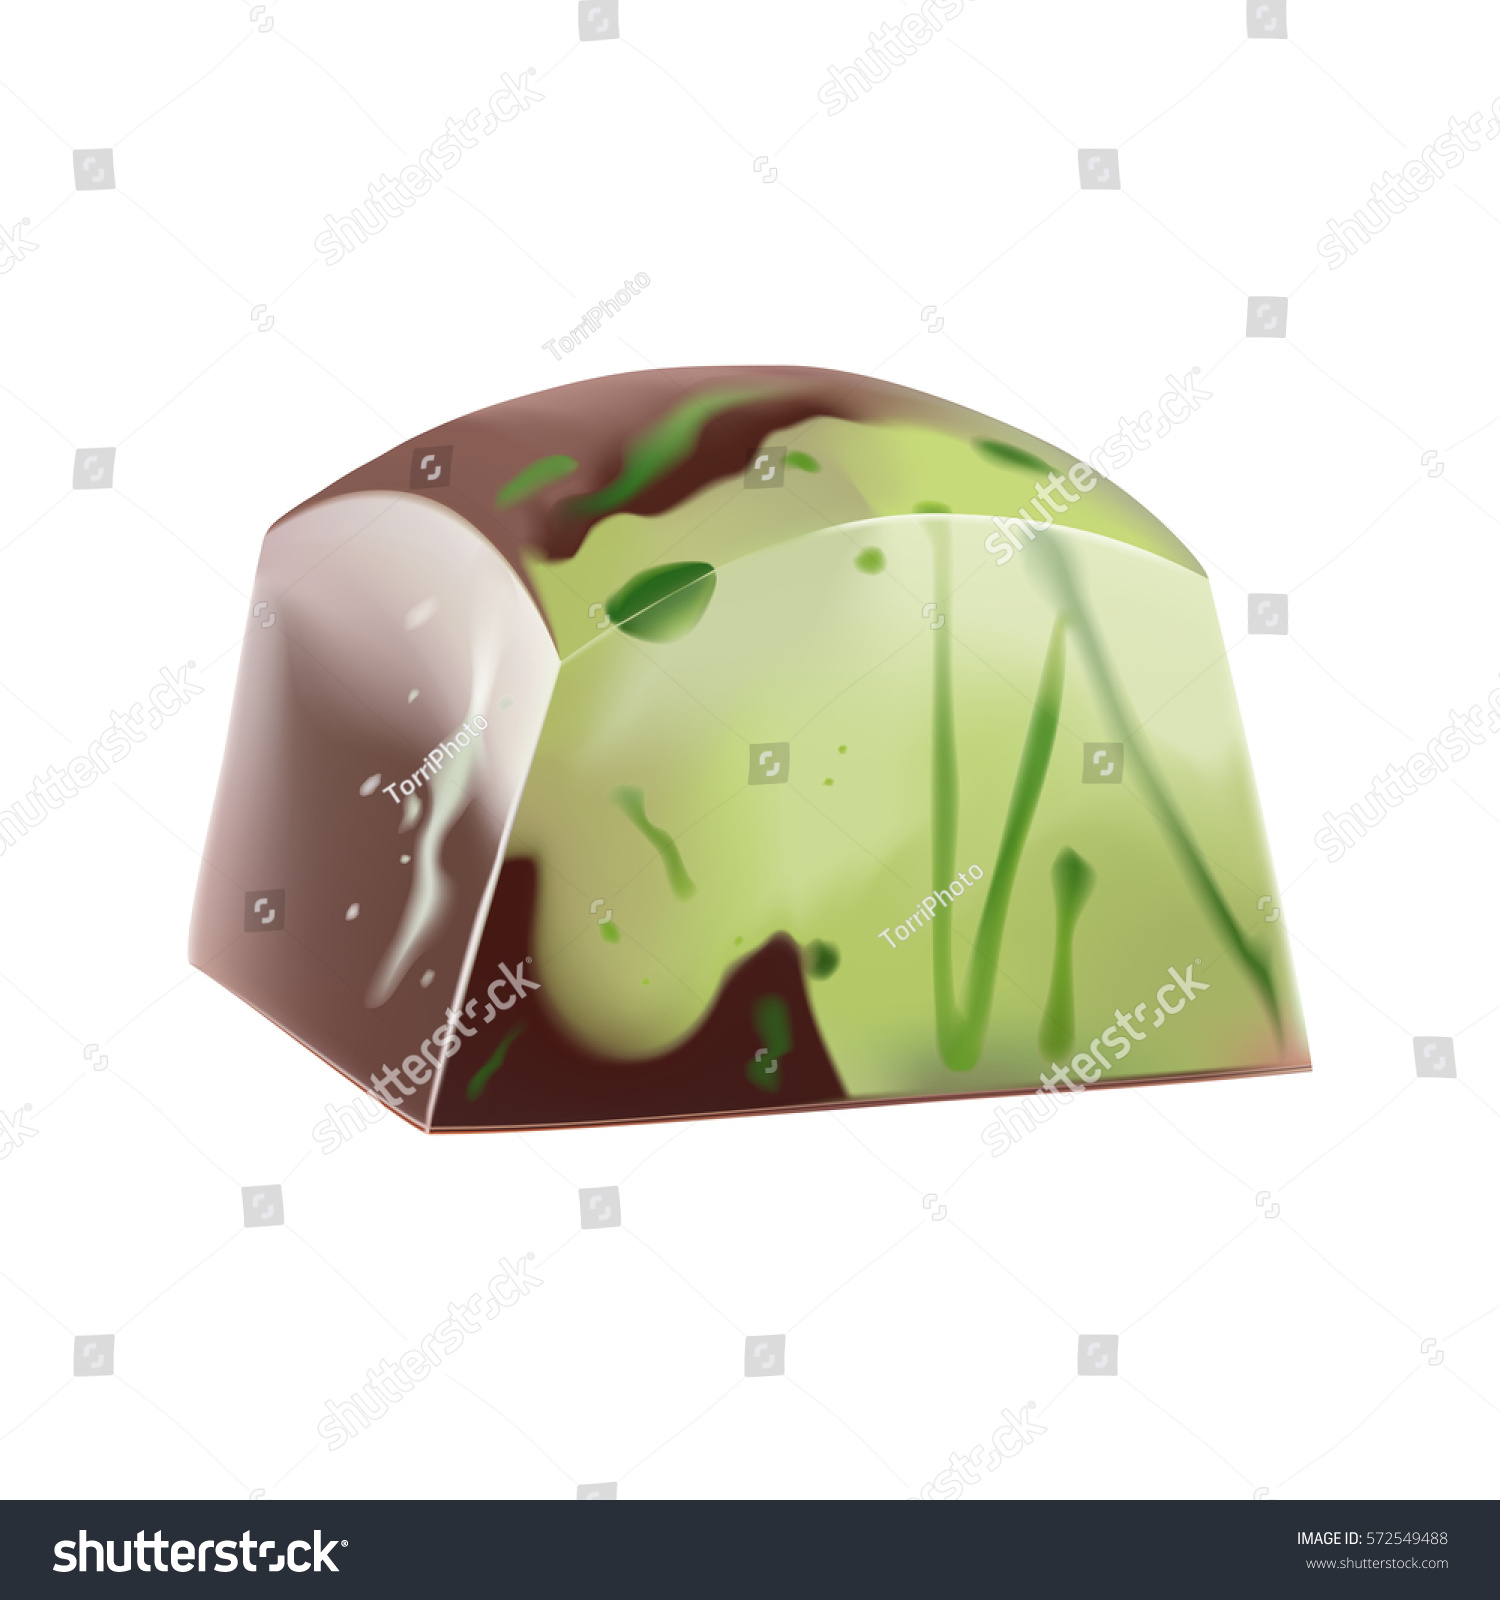 https://www.shutterstock.com/image-vector/painted-pistachio-chocolate-candy-green-splashes-572549488